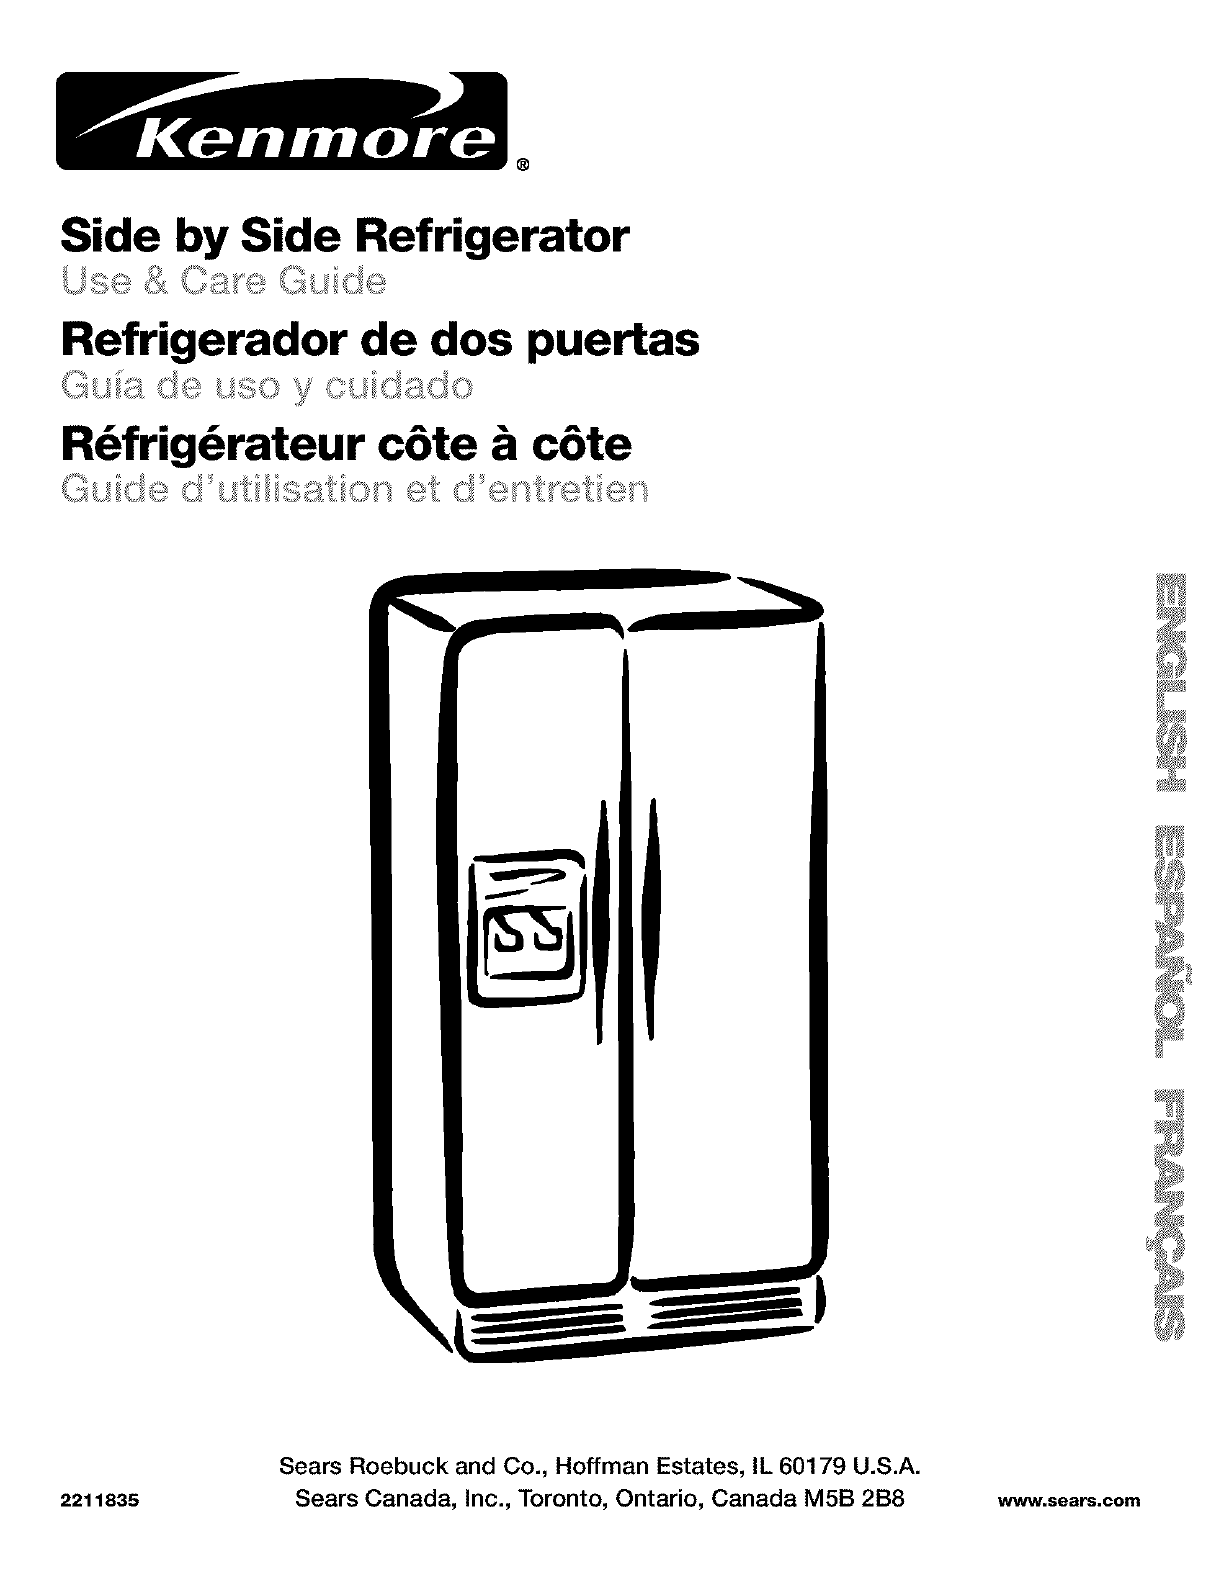 7f7c209c 3a82 4c01 aecb 31a71b630337 bg1 kenmore refrigerator 106 user guide manualsonline com kenmore side by side refrigerator wiring diagram at readyjetset.co